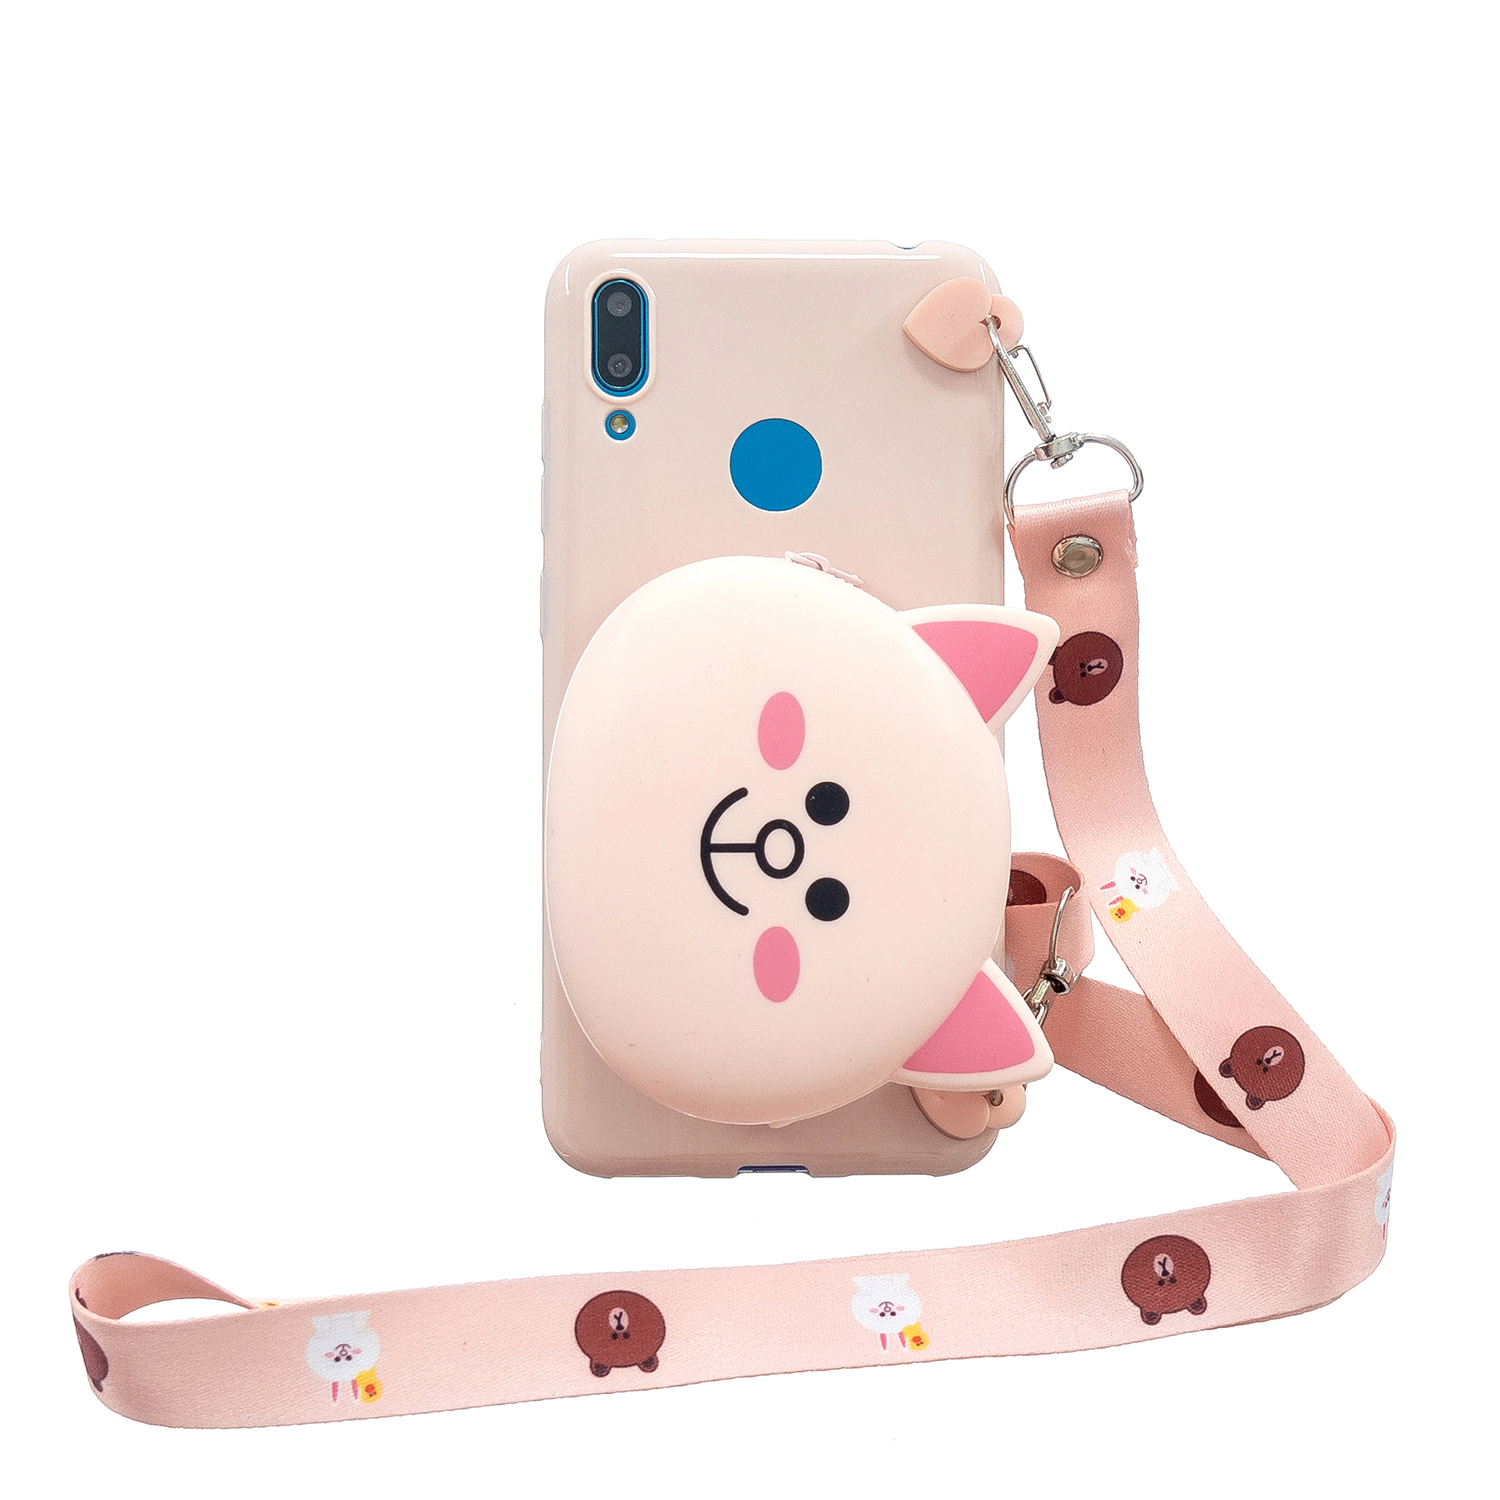 For HUAWEI Y6/Y7 Prime 2019 Cellphone Case Mobile Phone Shell Shockproof TPU Cover with Cartoon Cat Pig Panda Coin Purse Lovely Shoulder Starp  Pink